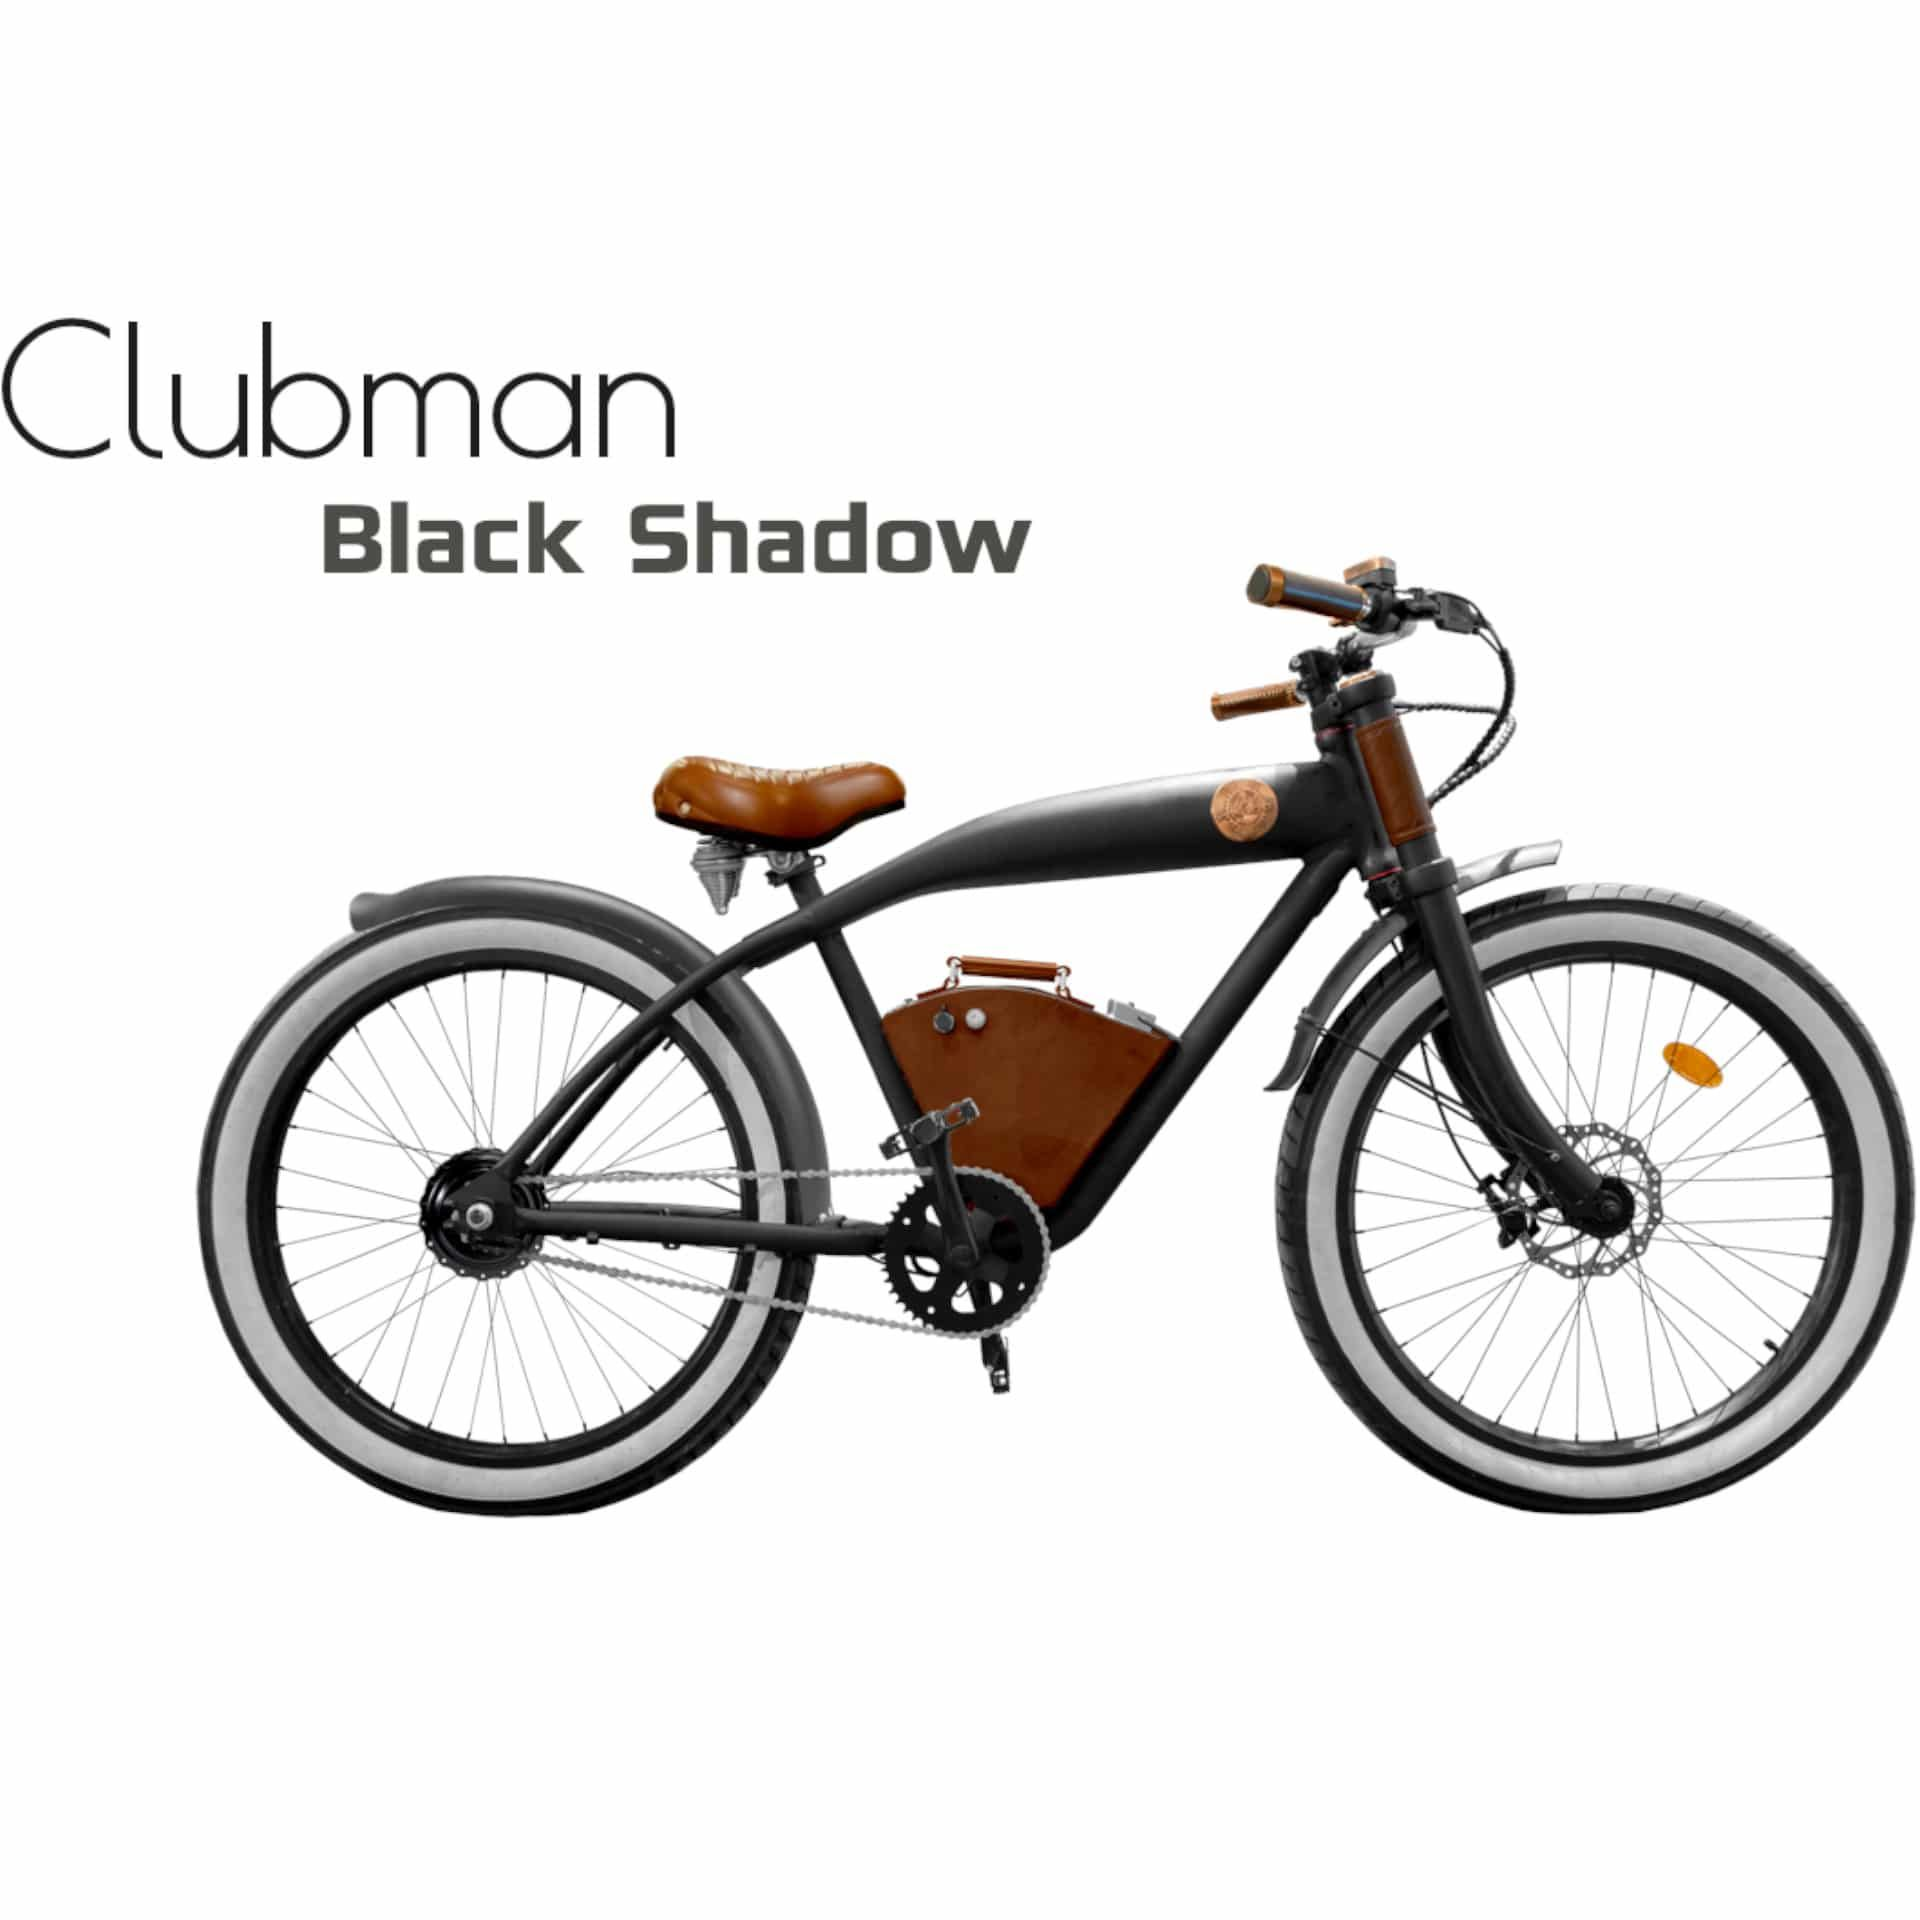 Rayvolt Clubman Black Shadow